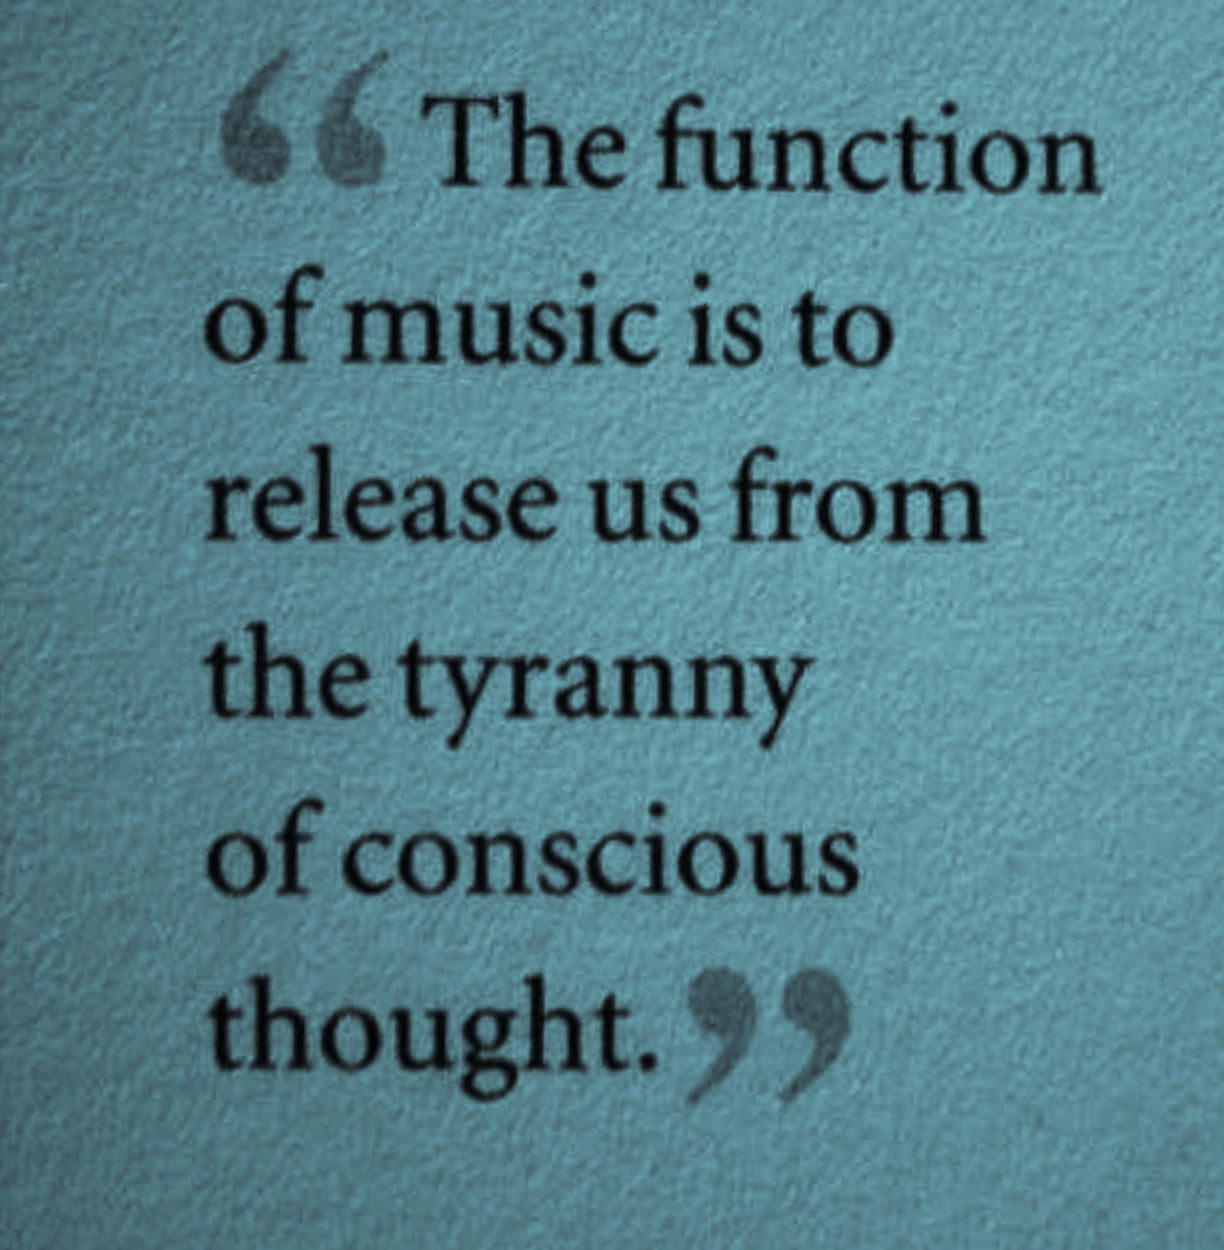 Conscious Quotes The Function Of Music Is To Release Us From The Tyranny Of